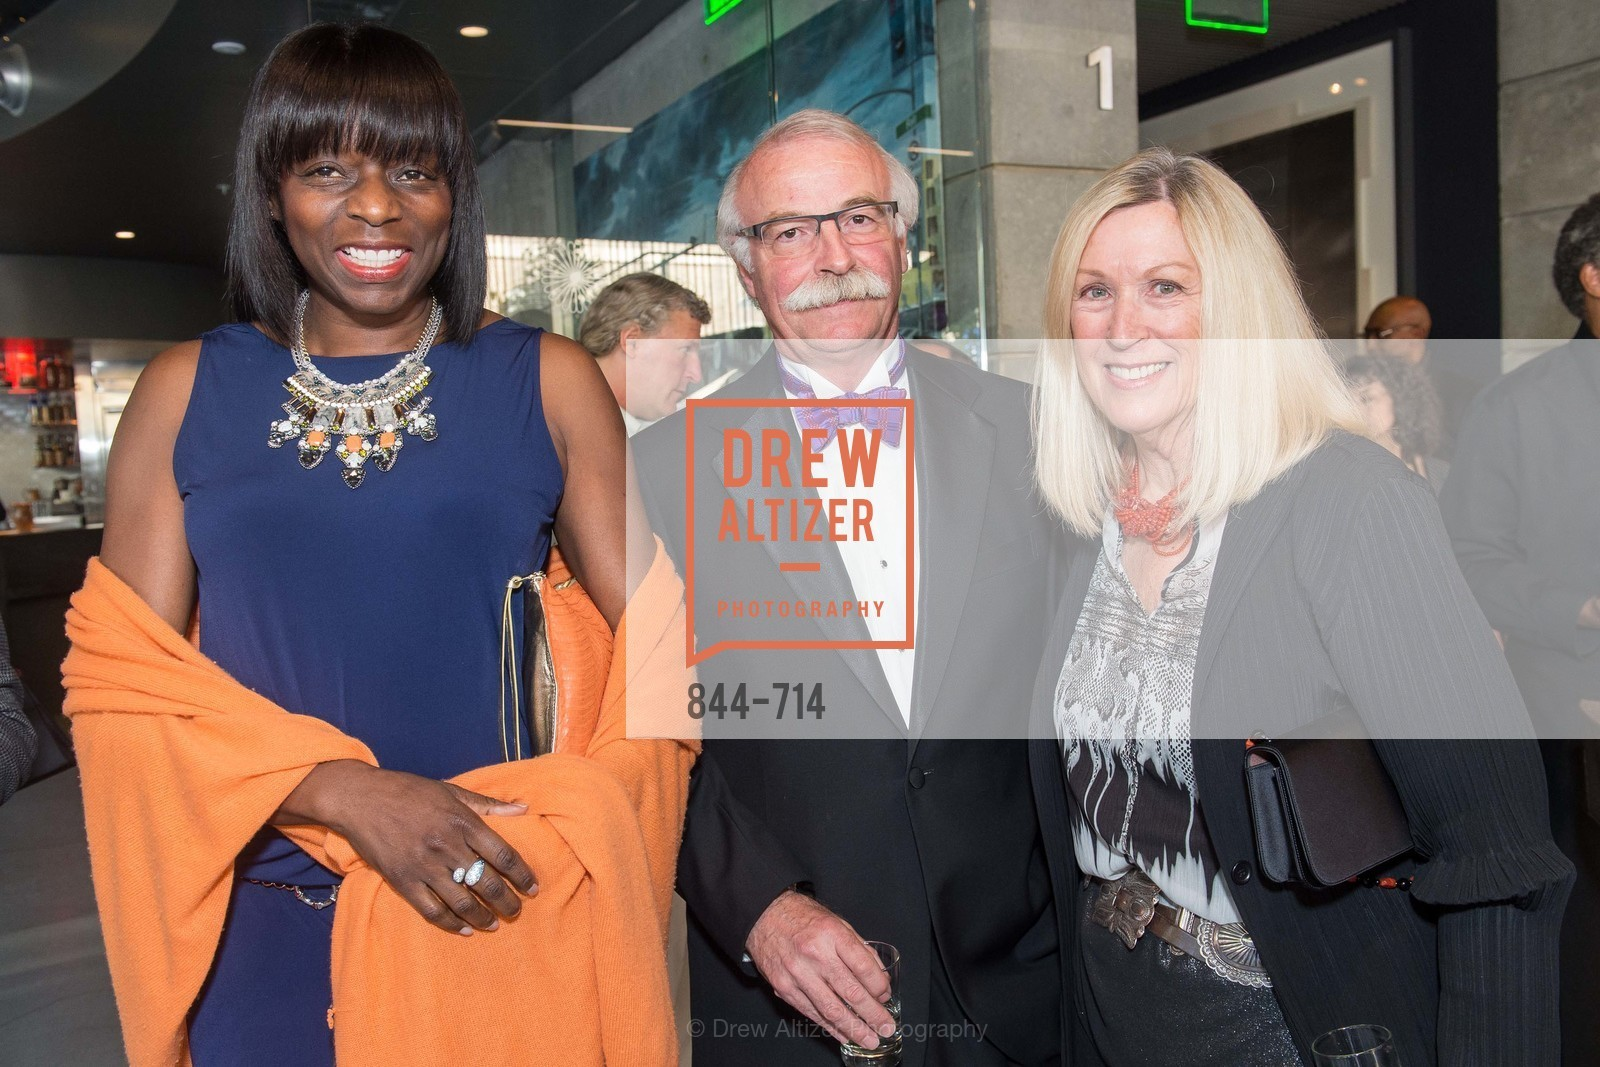 Kelly Carter, Eric Sueberkrop, Donna Blakemore, SFJAZZ Gala 2015 Honors Joni Mitchell with Lifetime Achievement Award, US, May 9th, 2015,Drew Altizer, Drew Altizer Photography, full-service agency, private events, San Francisco photographer, photographer california